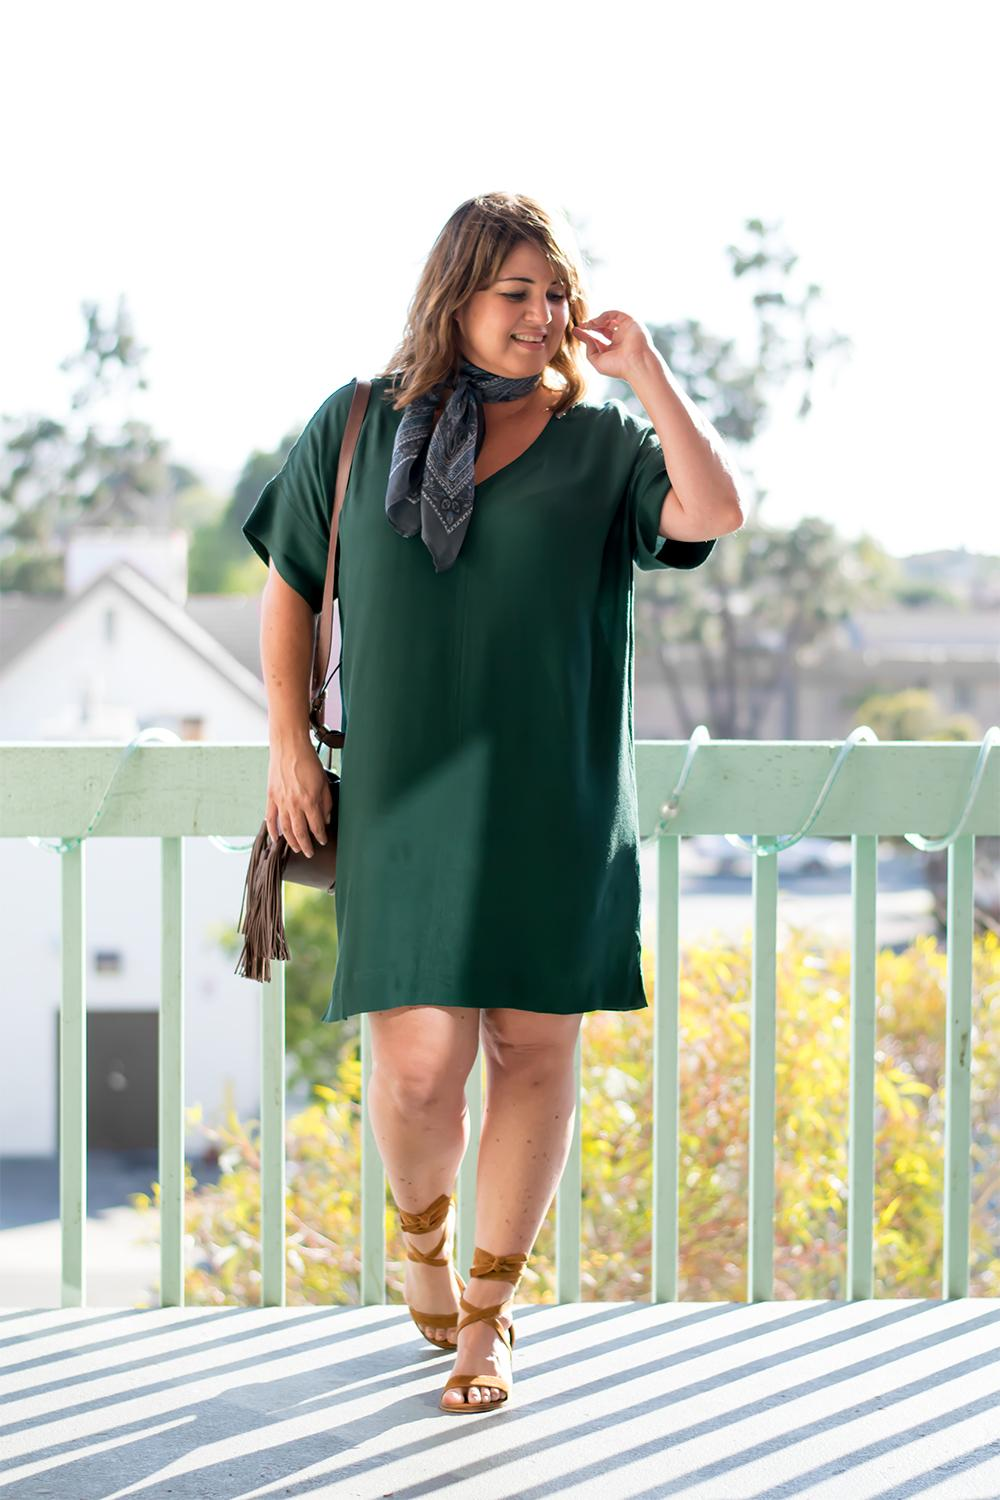 Weekend-Outfit-Ideas-The-Biggest-Trends-for-2017-Barefoot-in-LA-Fashion-Blog-Style-DSC_0833